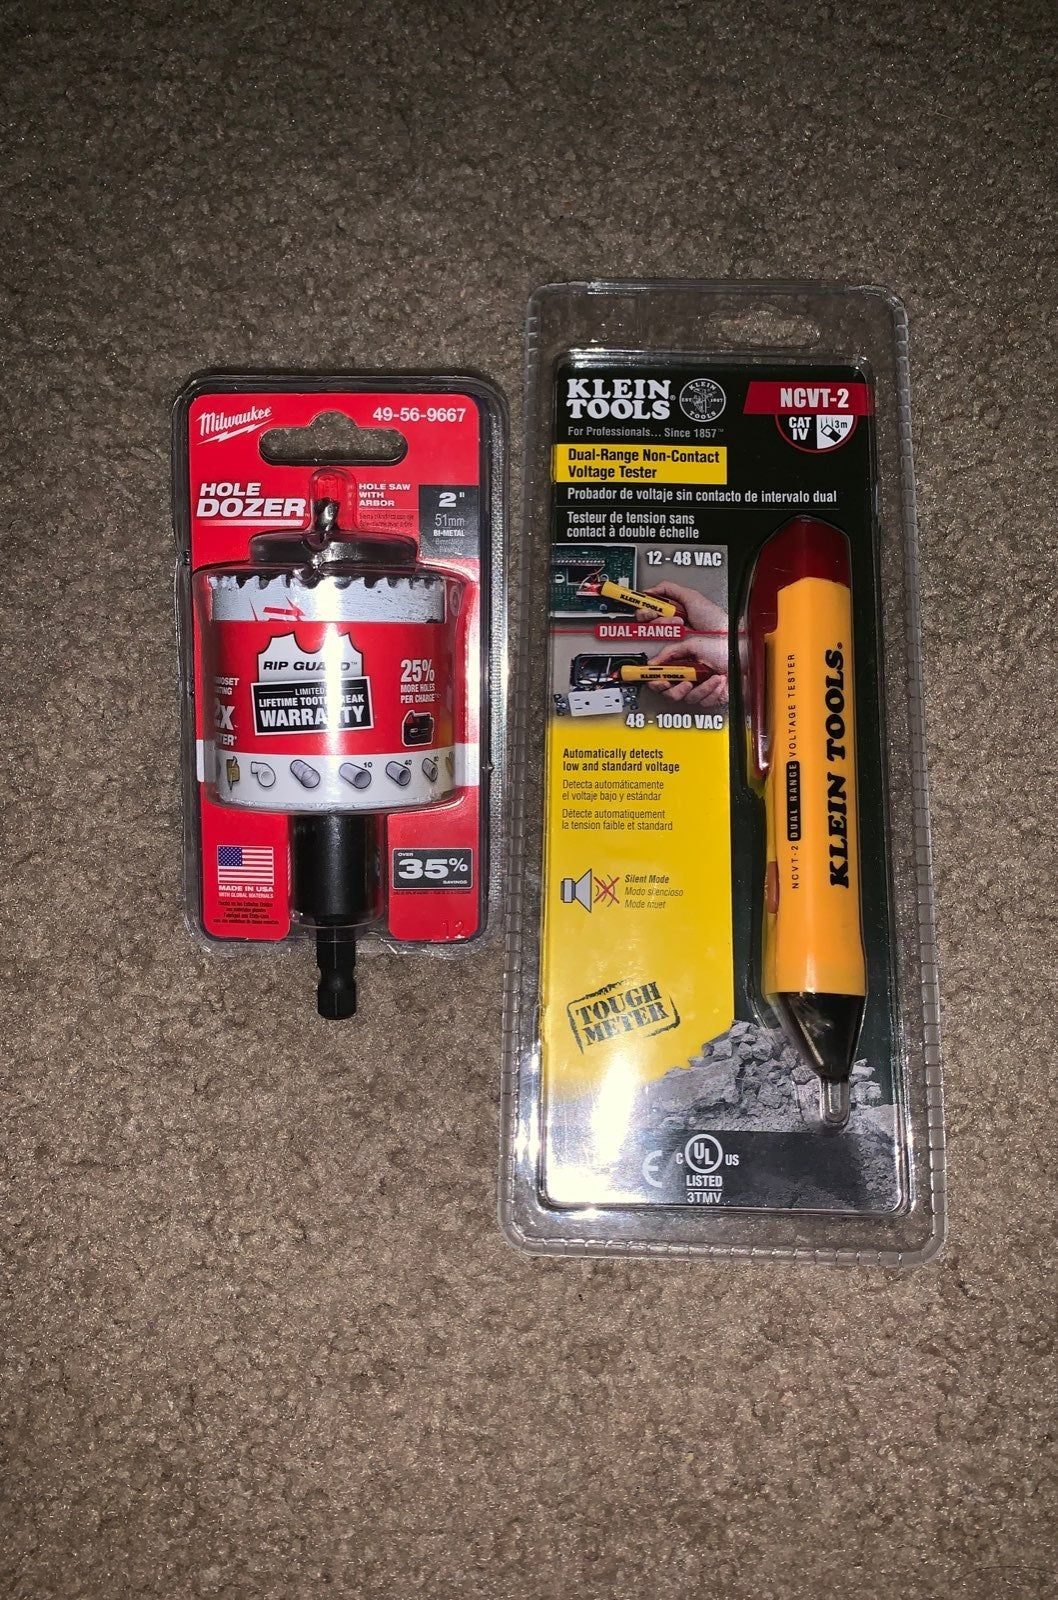 2in Hole Saw Milwaukee And Klein Tools Voltage Tester Ncvt 2 Brand New In Packaging Klein Tools Milwaukee Tools Milwaukee